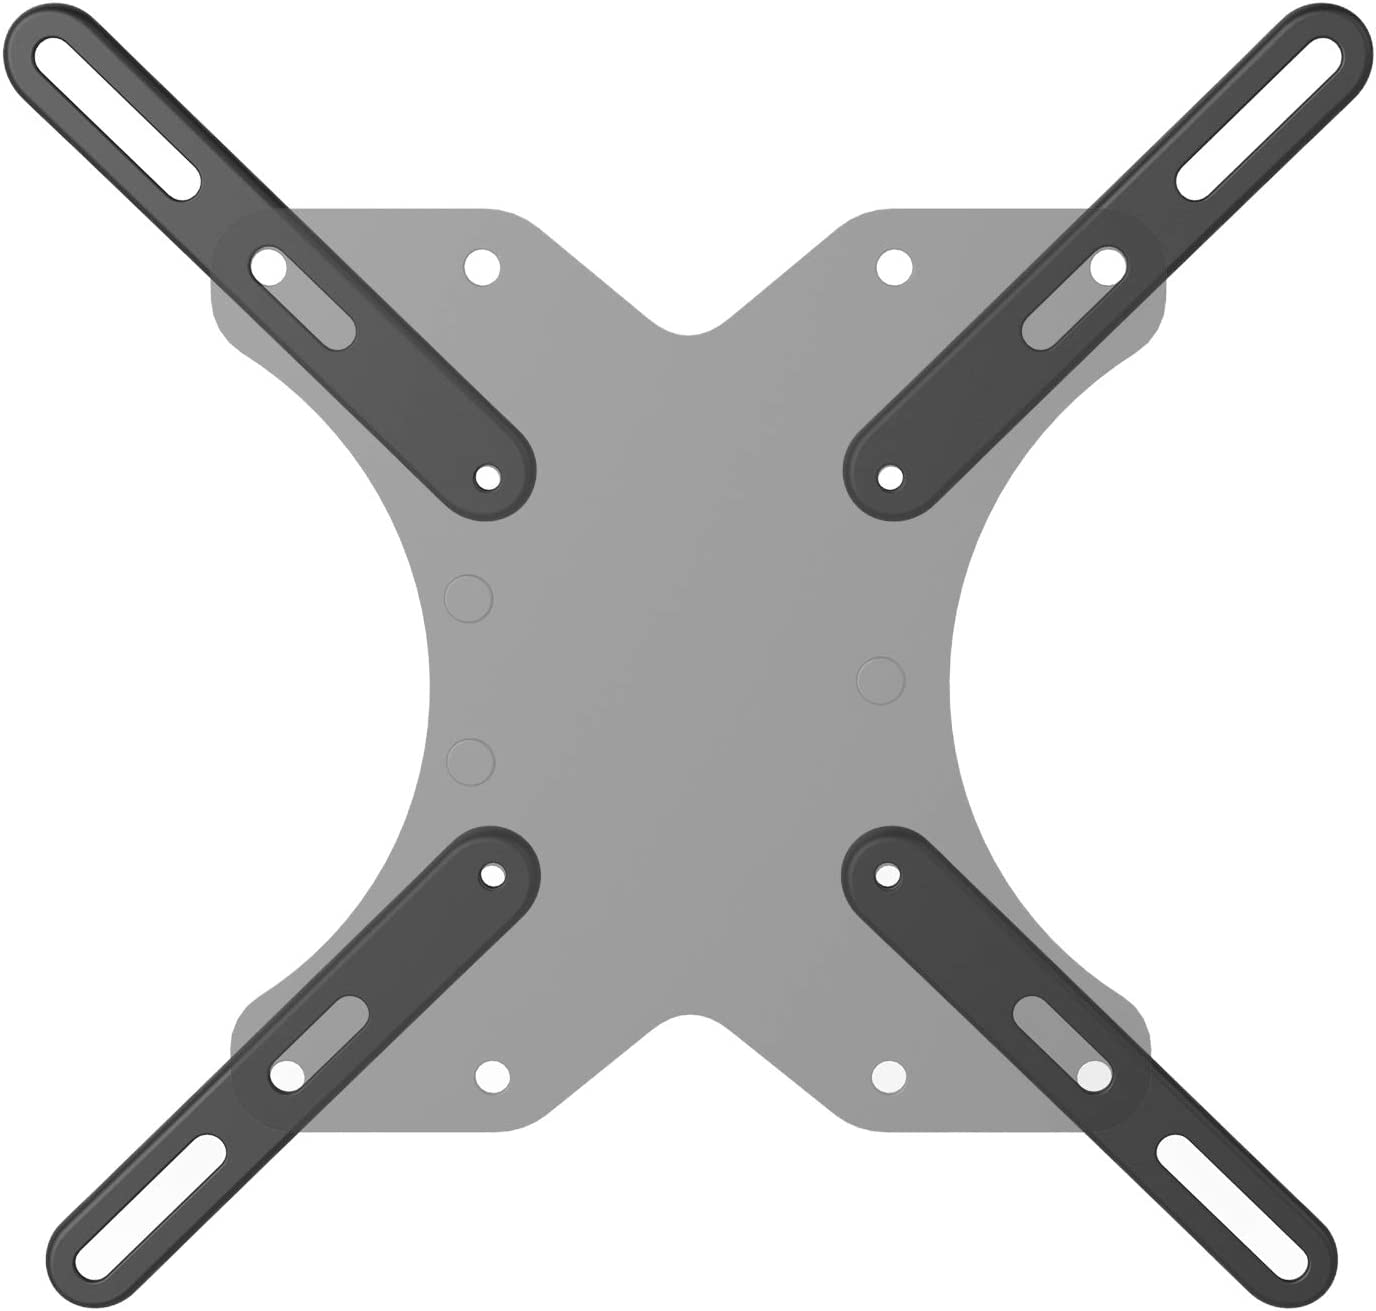 WALI Rapid rise Extender Bracket Adapter half TV Monitor Accessory Mounting for